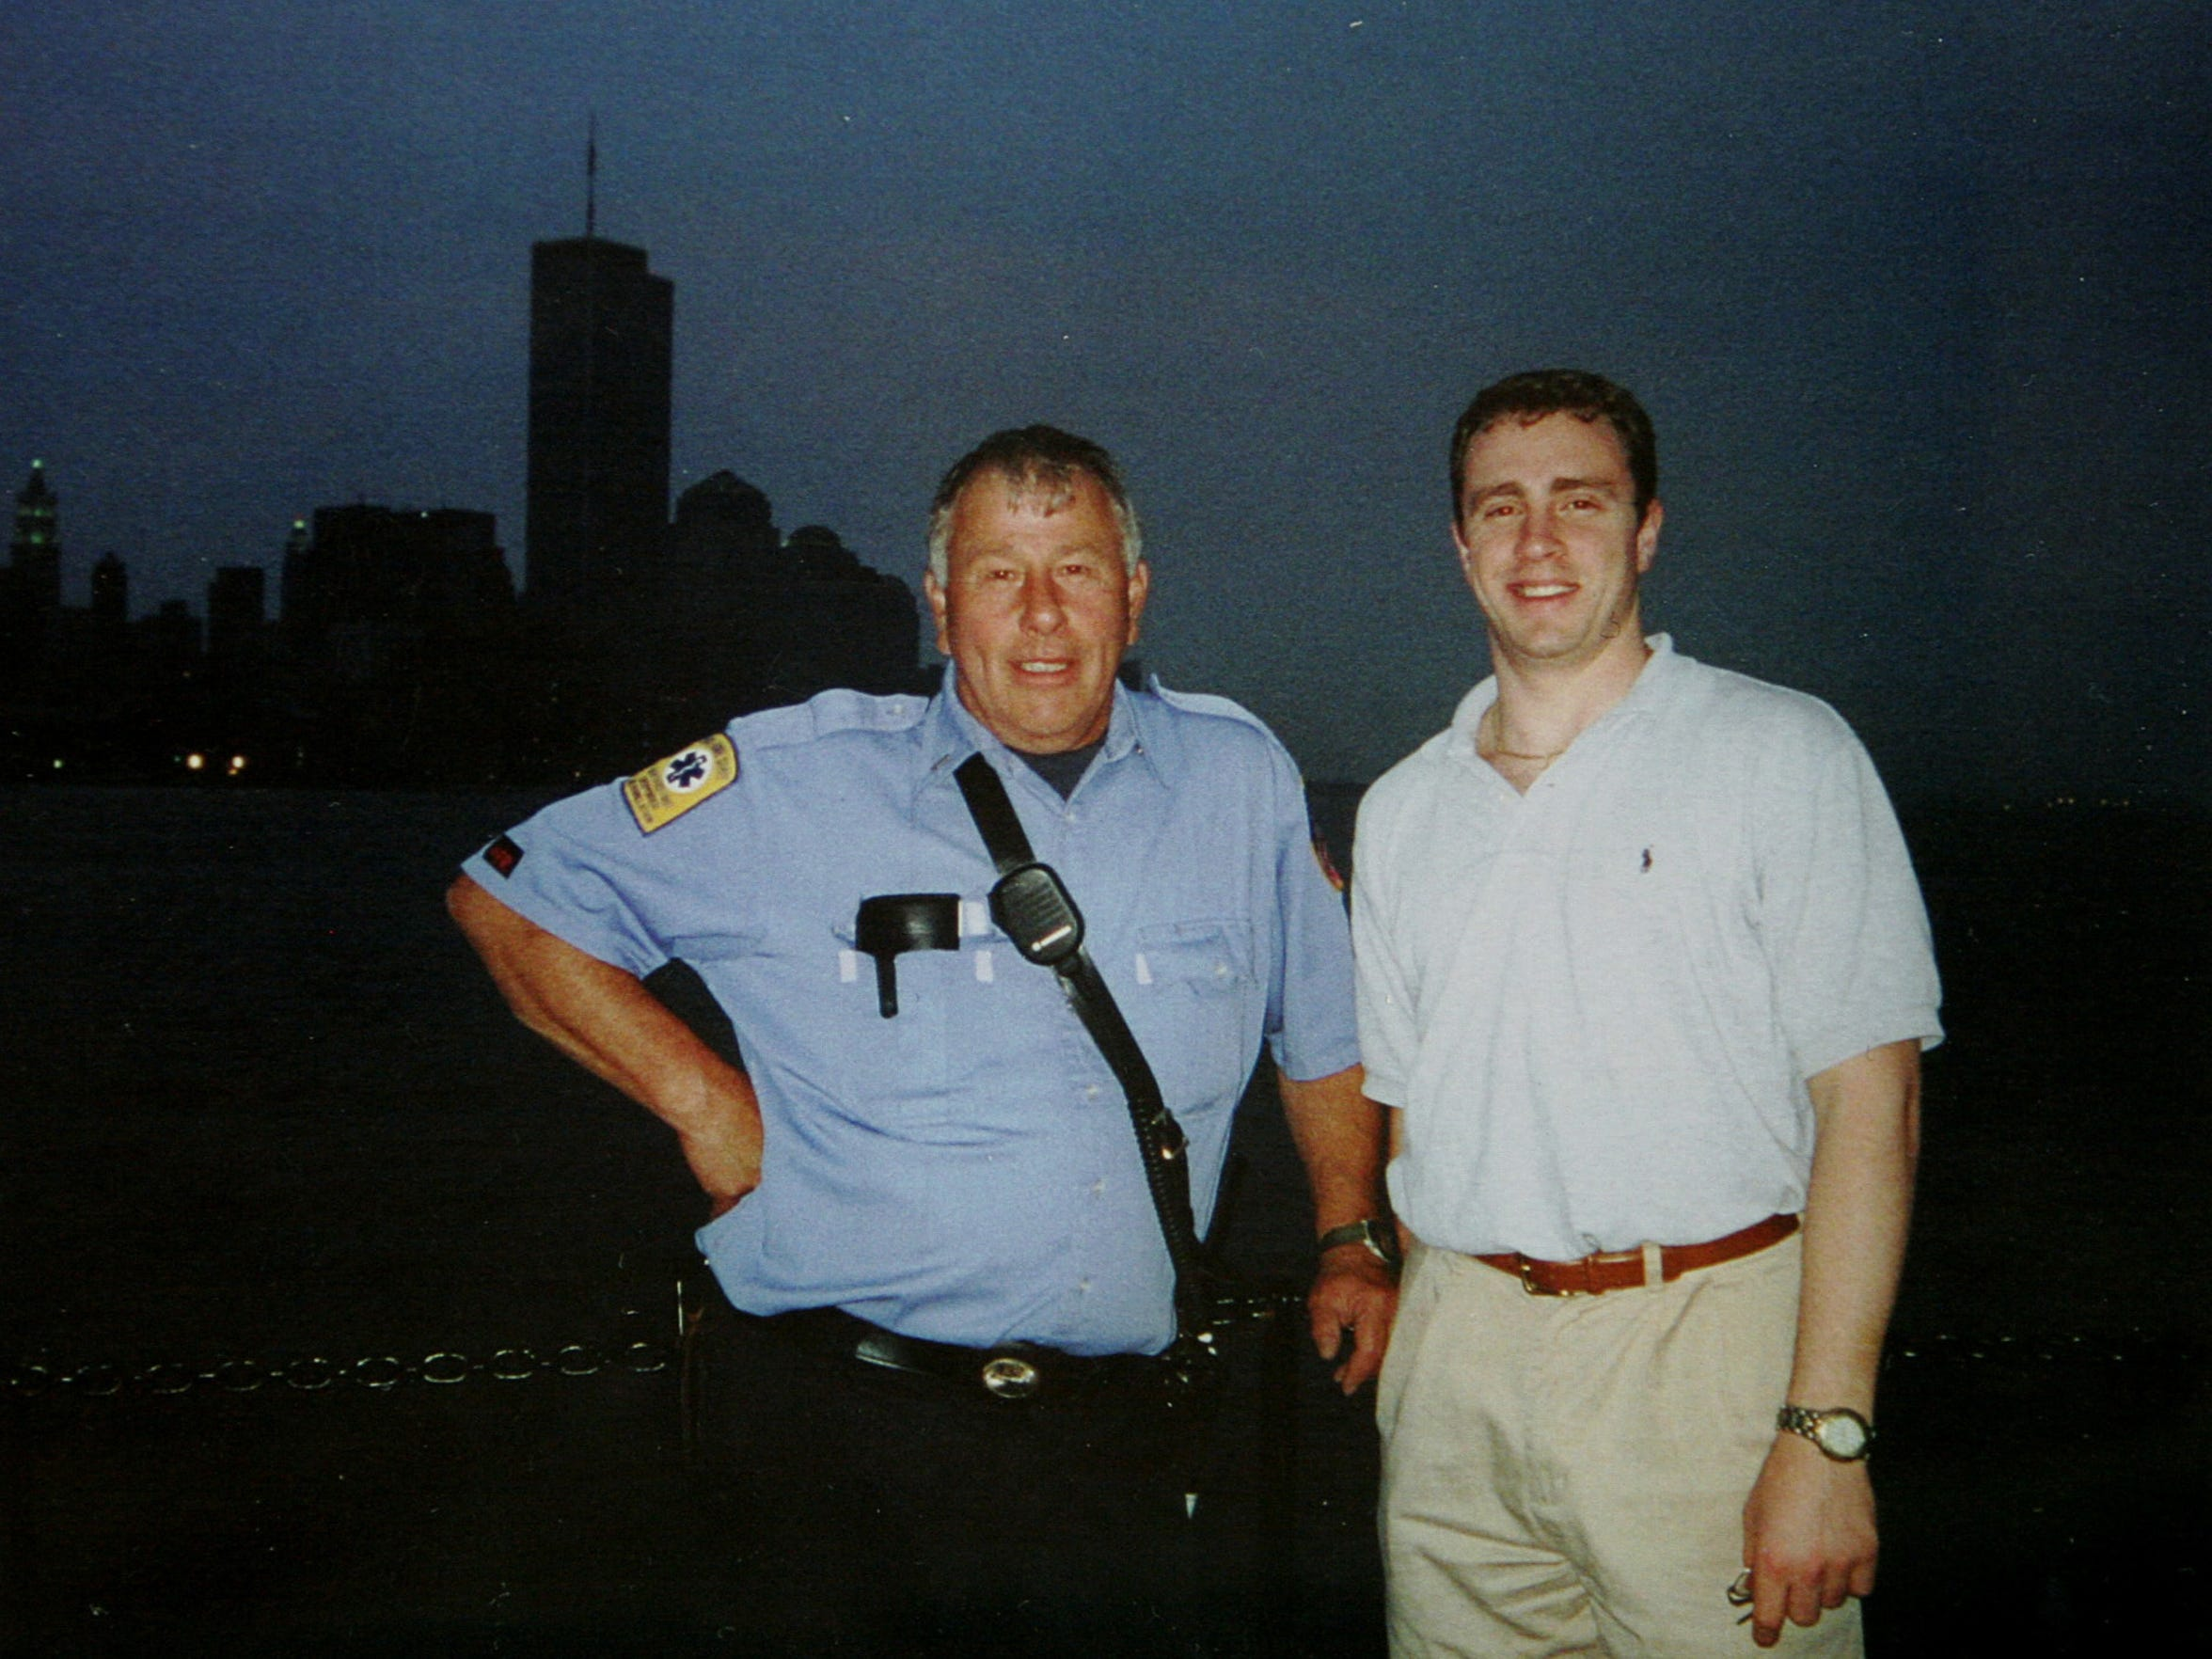 FDNY Lt. Harry Wanamaker of Upper Nyack, left, with Welles Crowther in front of the World Trade Center on June 20, 2001. Crowther died Sept. 11, 2001. Wanamaker, who worked on the rescue and recovery at ground zero, died in 2010.